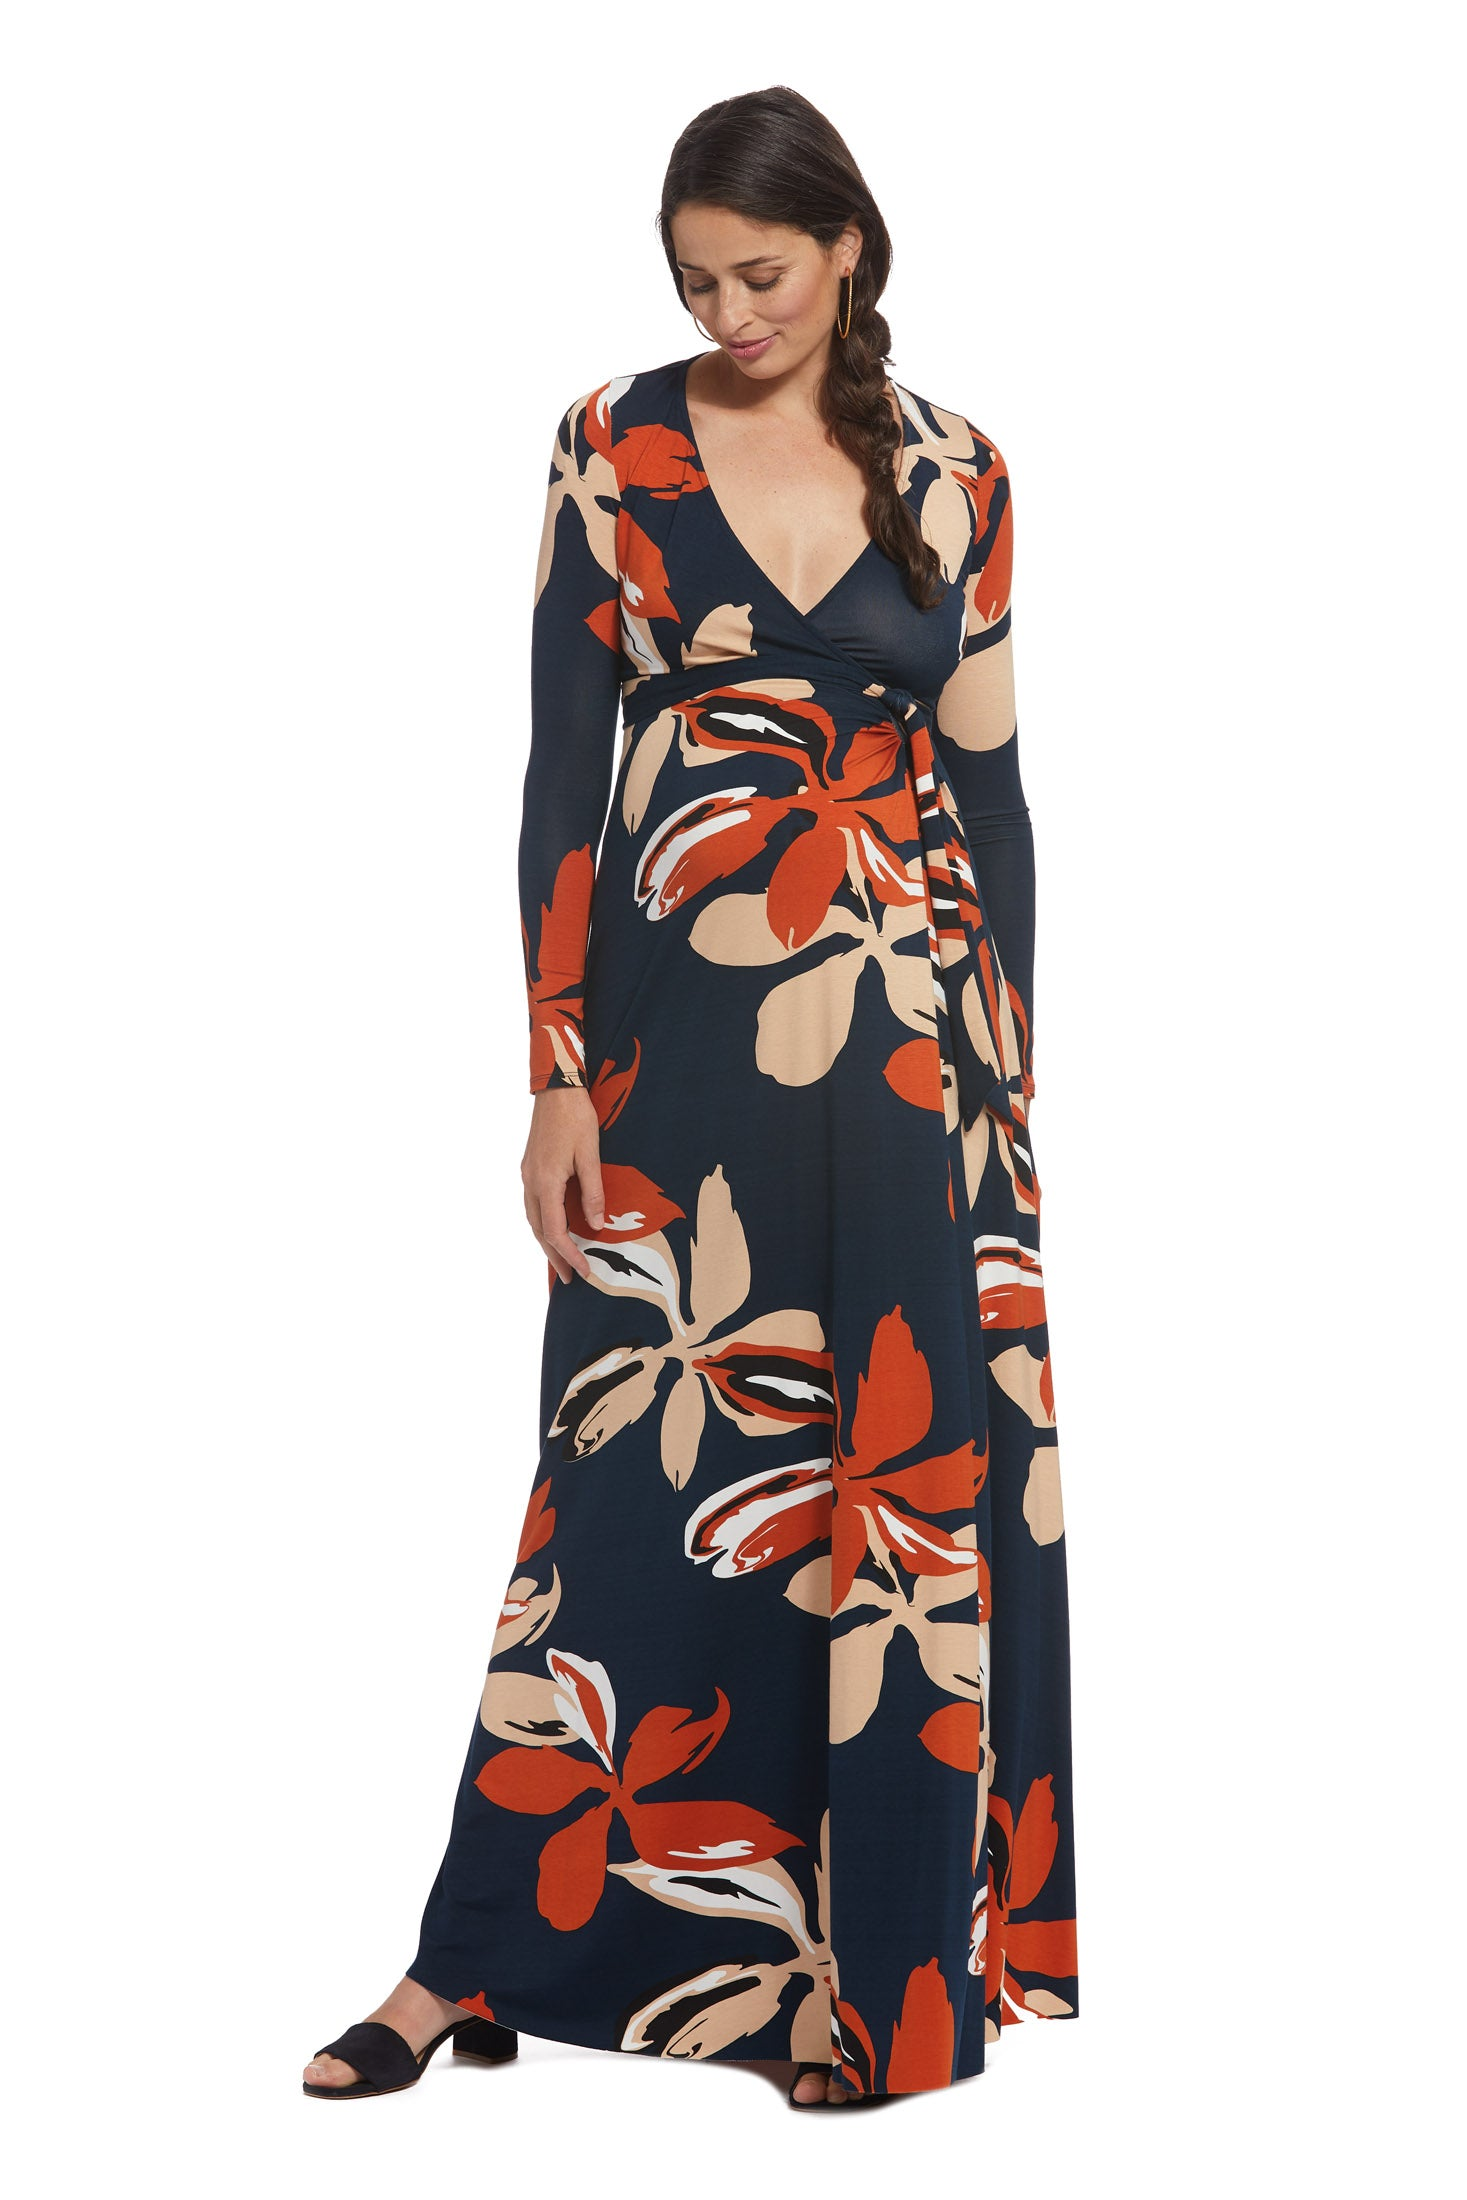 Harlow Dress - Pop Floral, Maternity